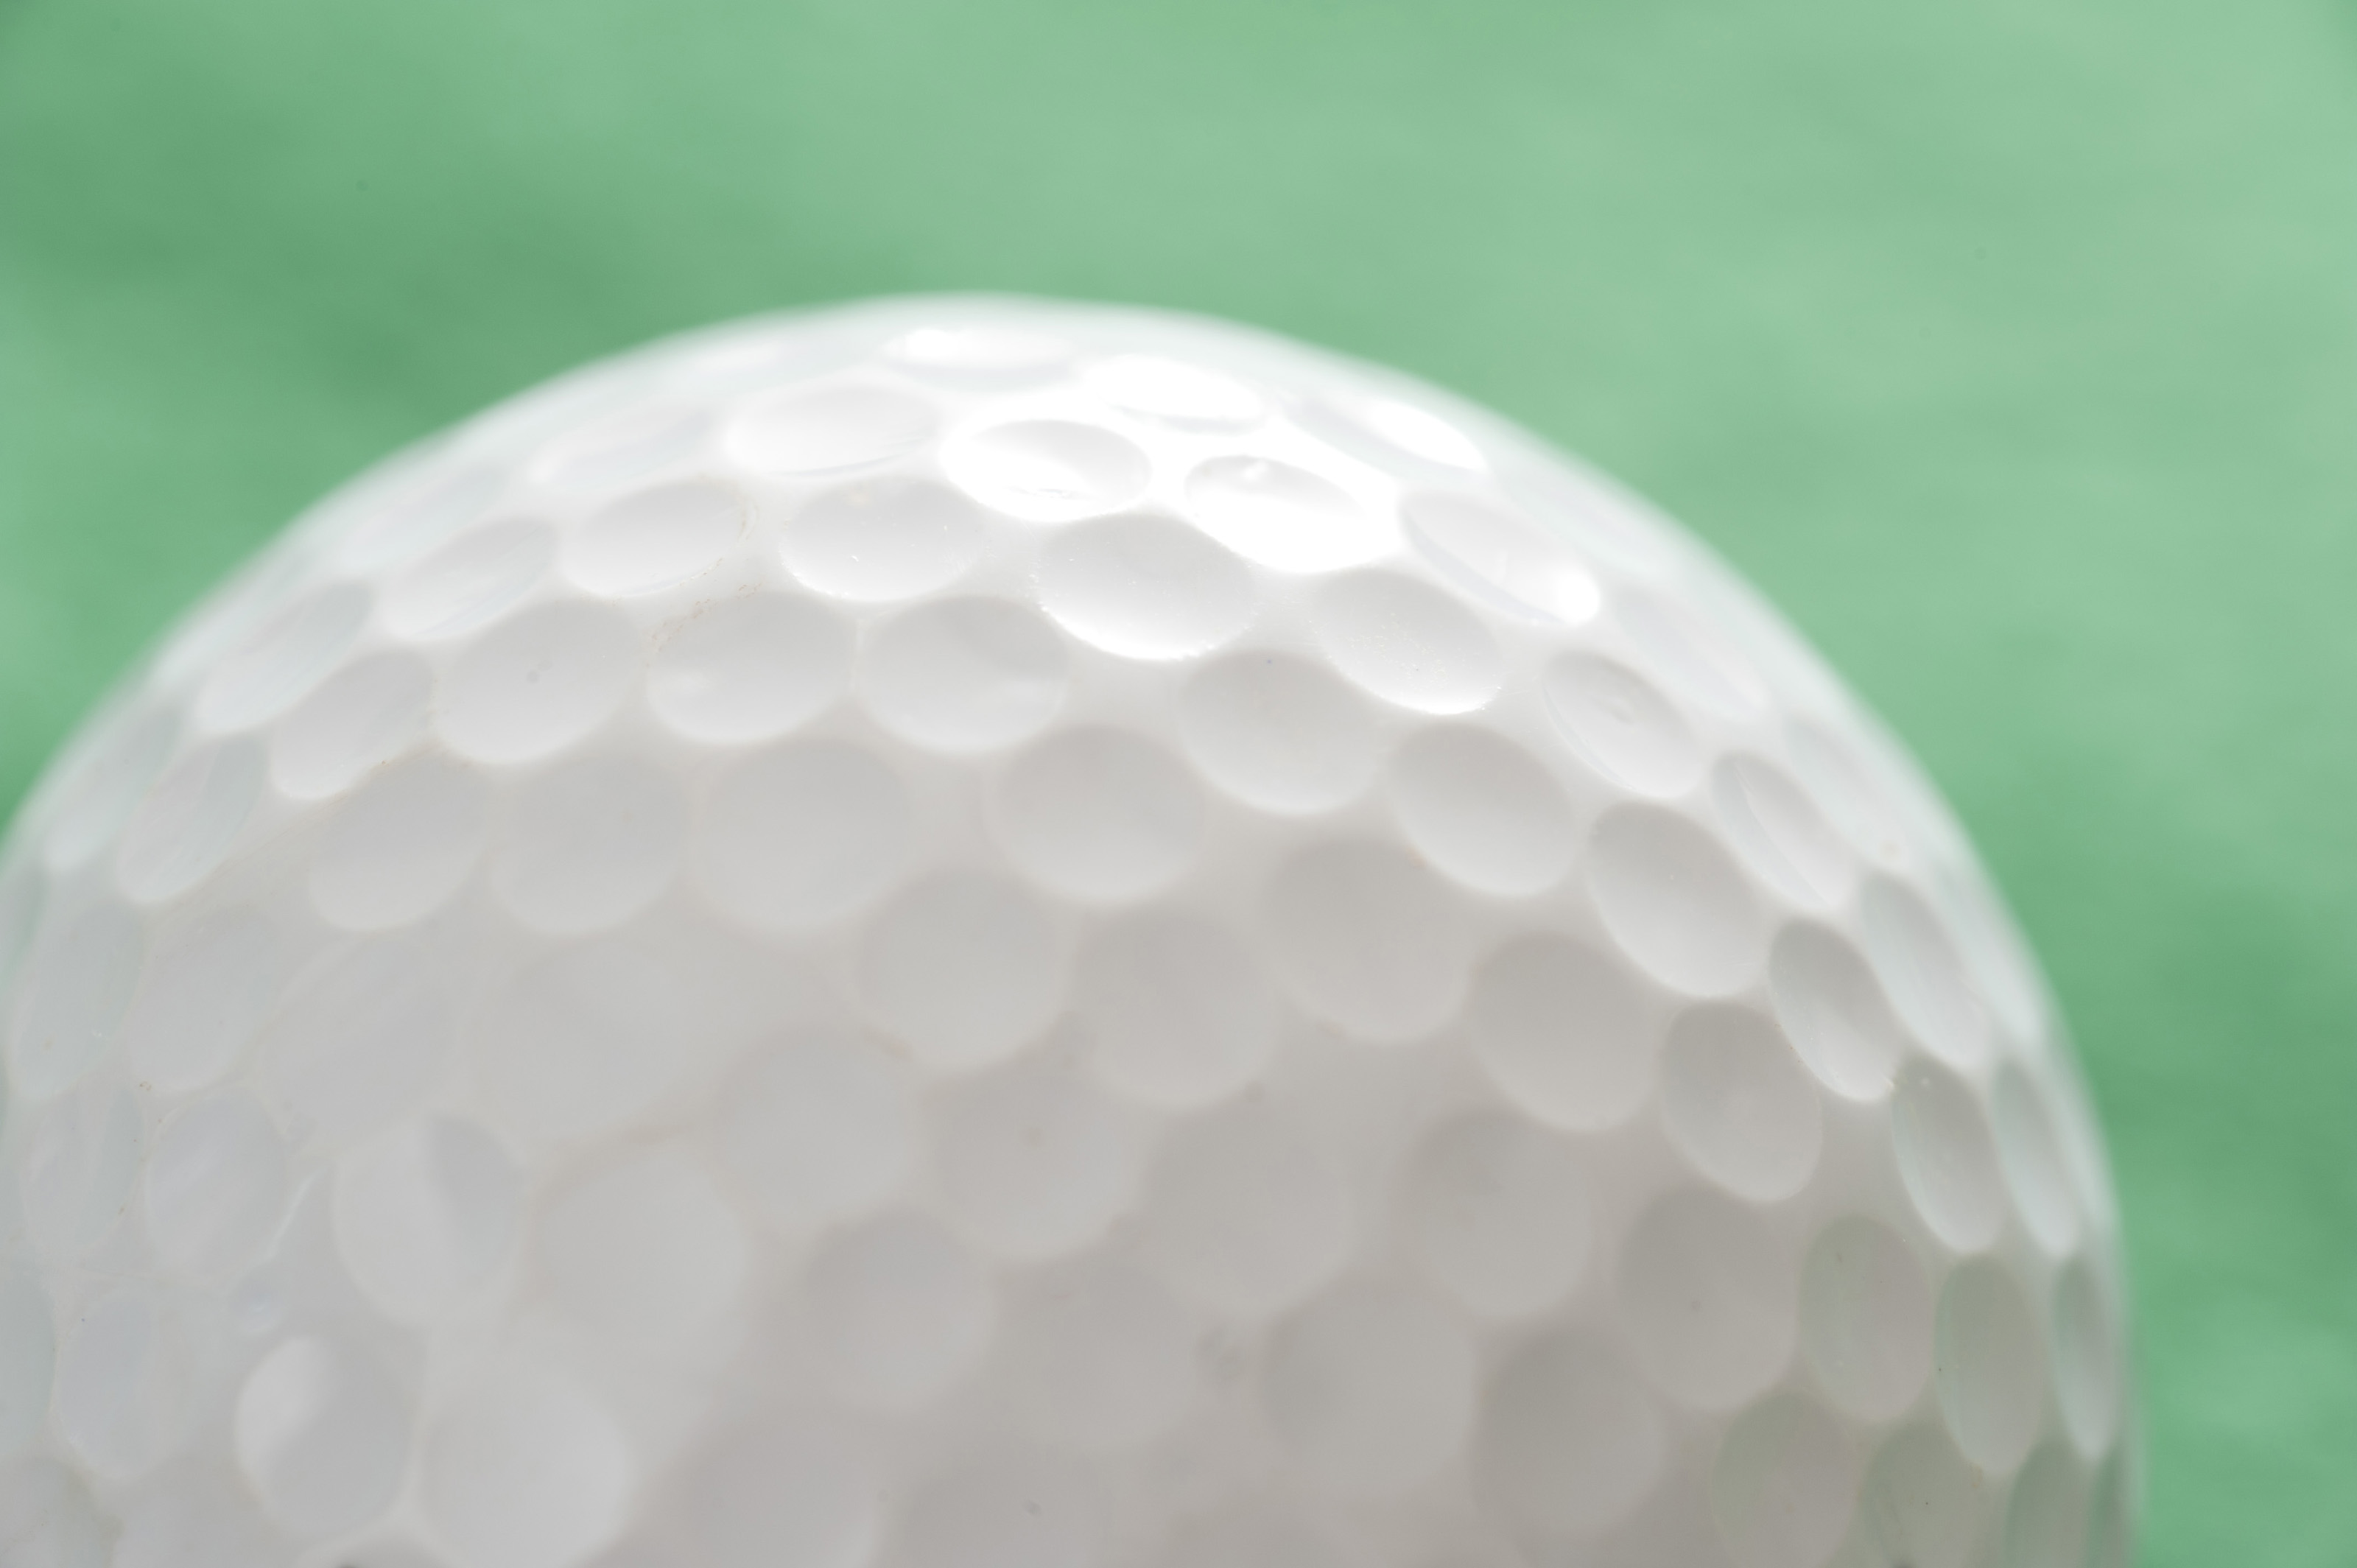 free stock photo 10987 close up of a white golf ball